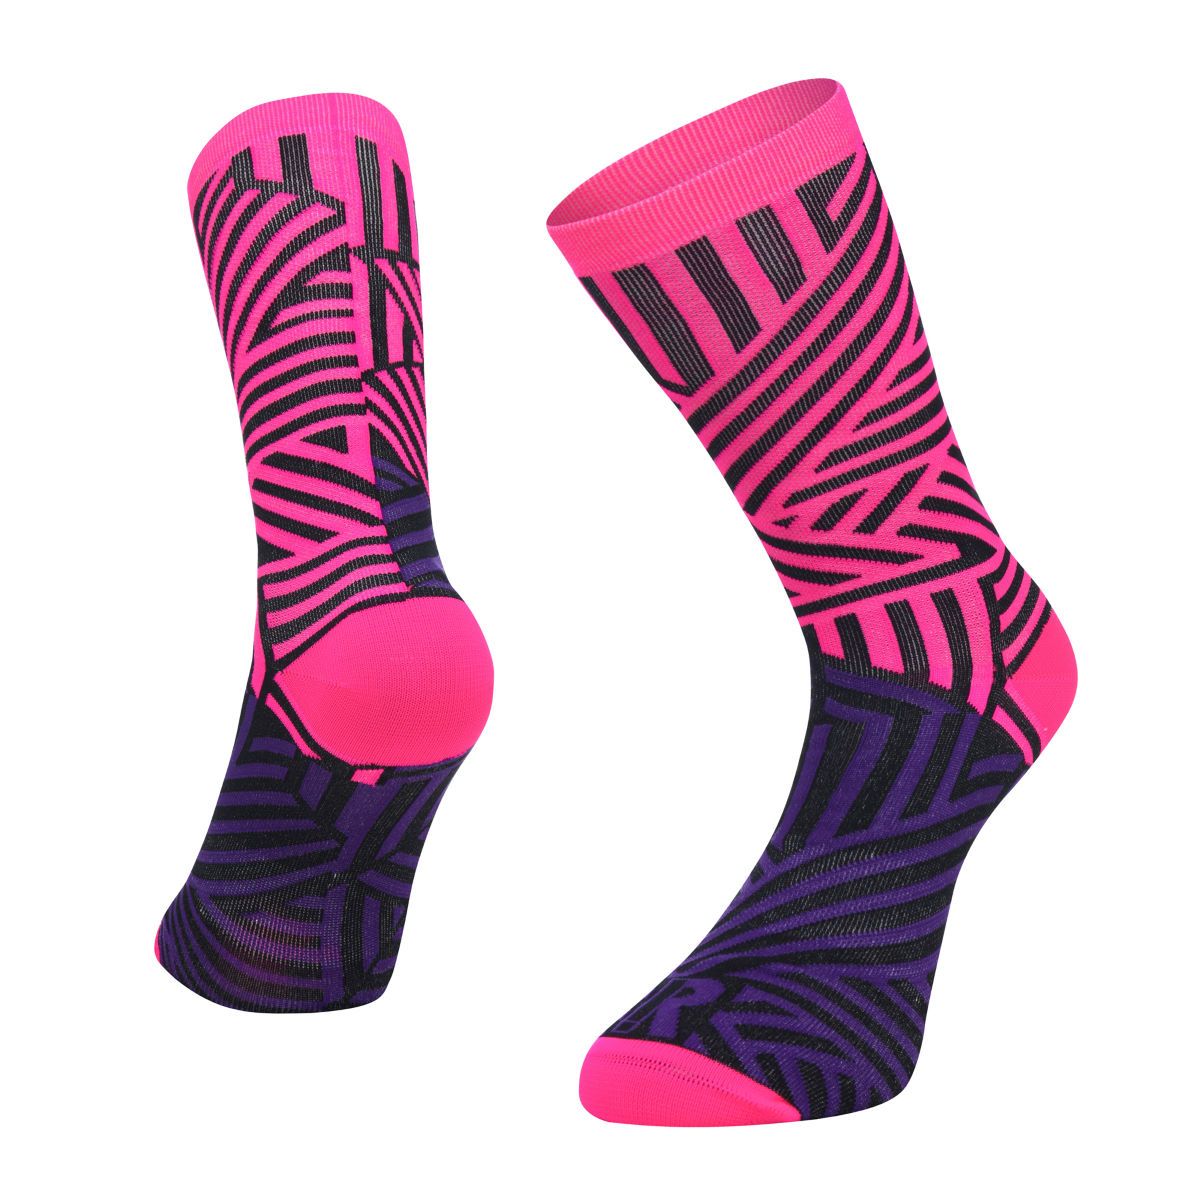 Ratio Dash 20 cm Sock (Pink/Purple) - Calcetines